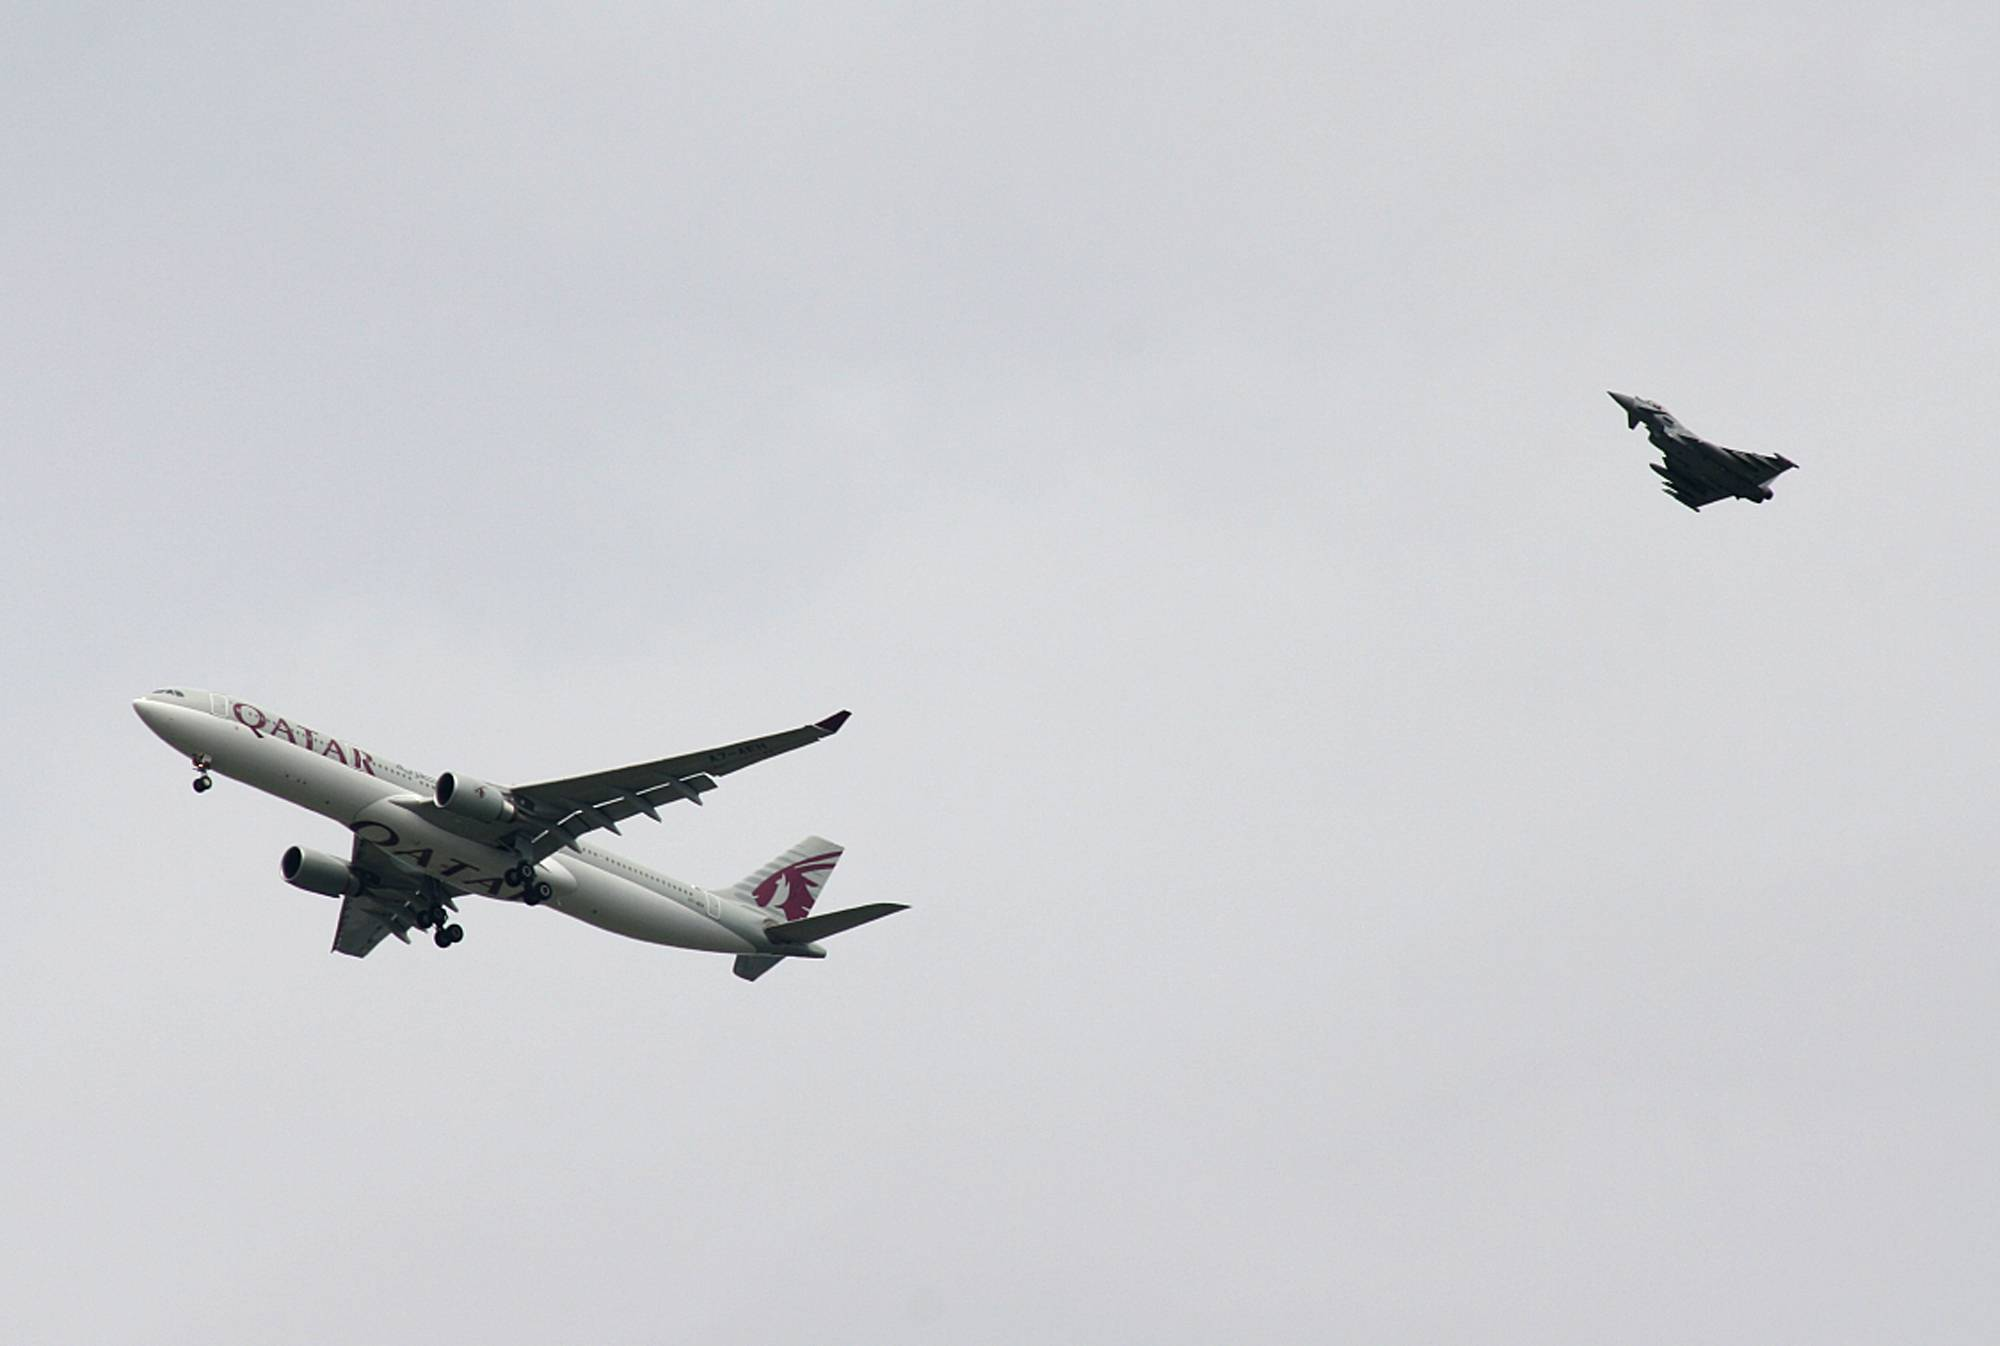 A military fighter jet escorts a passenger jet as it comes in to land at Manchester airport, Manchester, England, Tuesday, Aug. 5, 2014. Police say they have arrested a man on suspicion of making a hoax bomb threat after Qatar Airways Flight 23 landed with a military fighter escort at Britain's Manchester Airport.